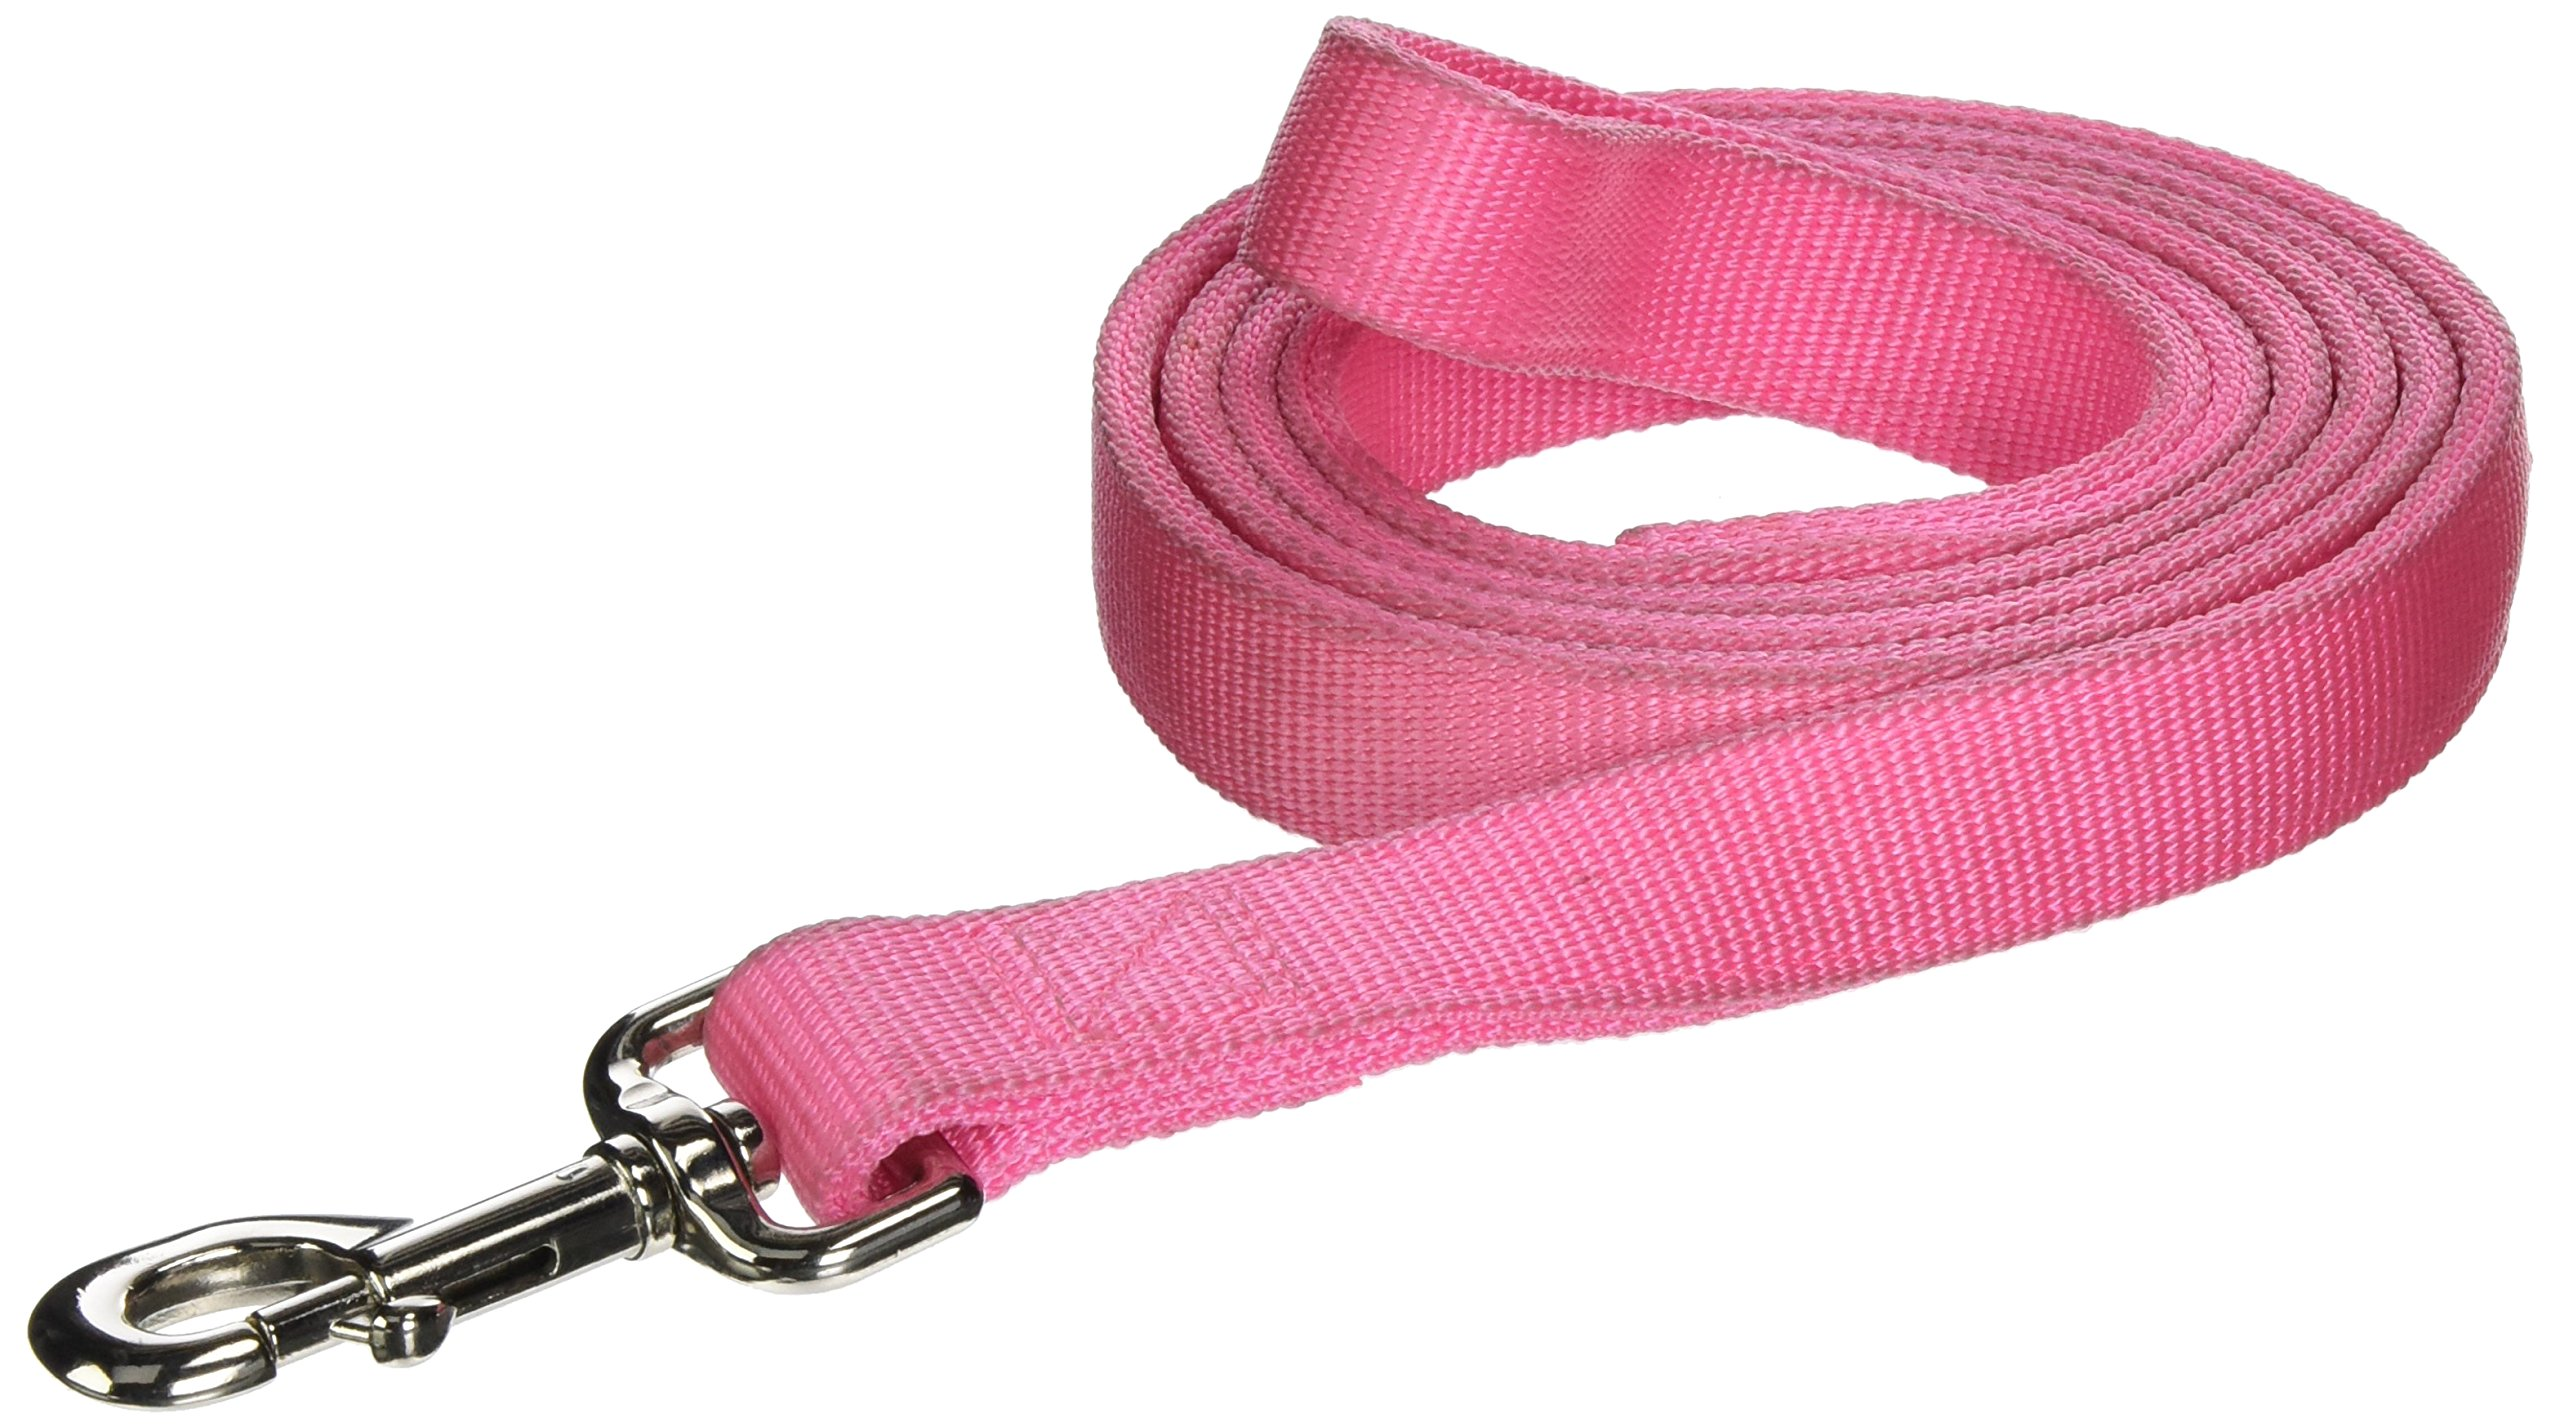 Coastal Pet Products DCP290606PKB Double Training Collar Lead for Pets, 1-Inch, Bright Pink by Coastal Pet